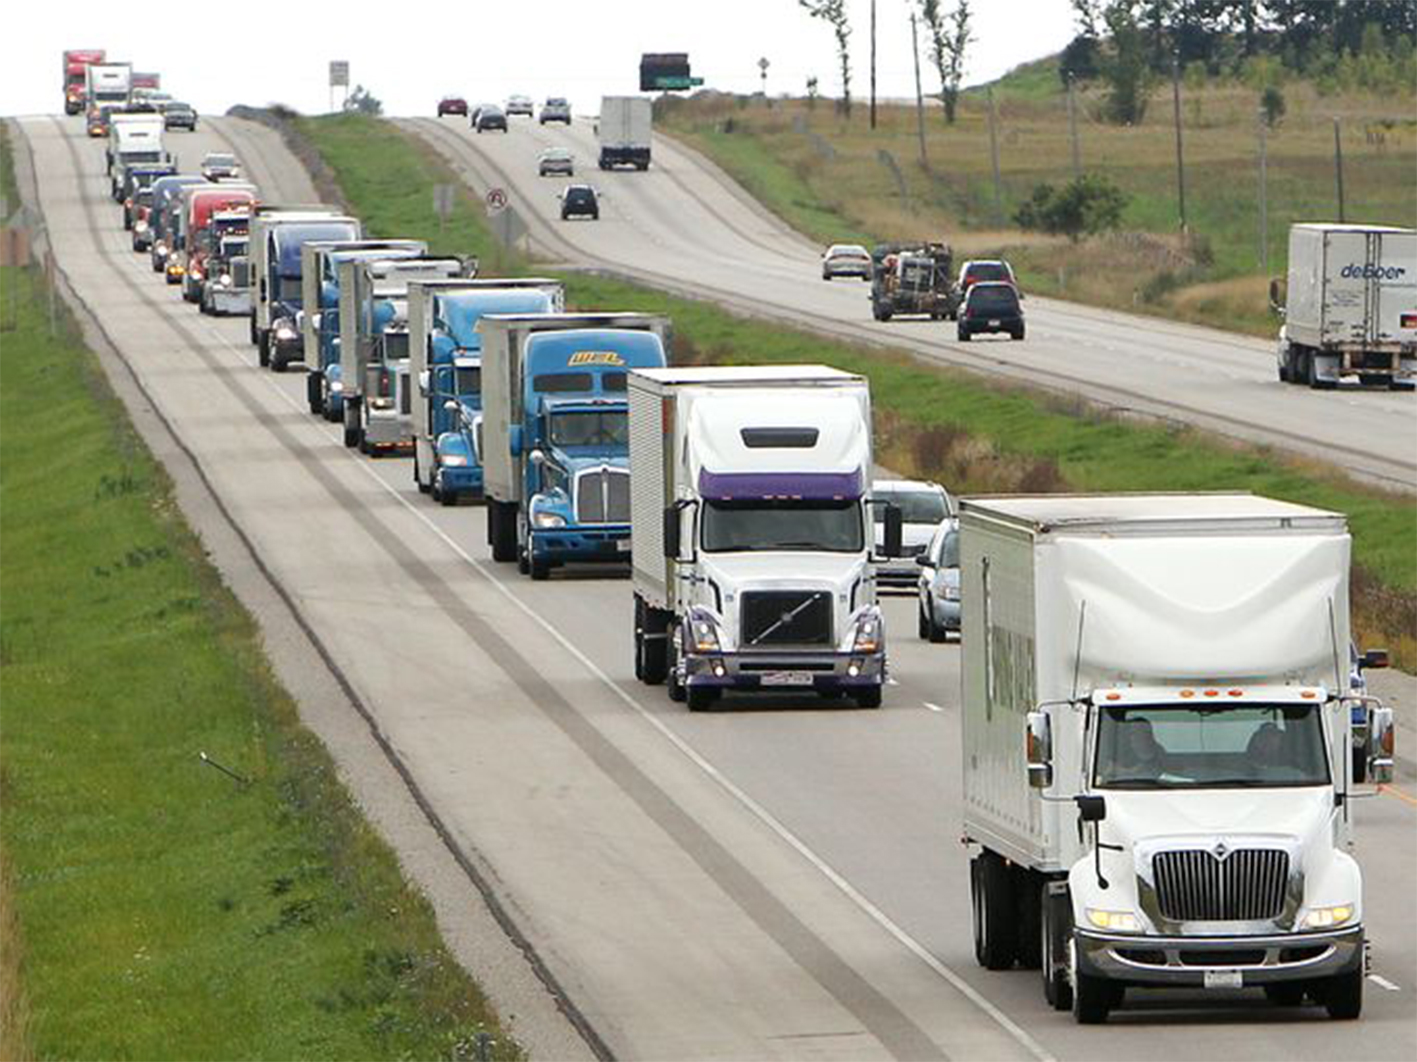 Jx Peterbilt And Fellow Truckers Show Strong Support As